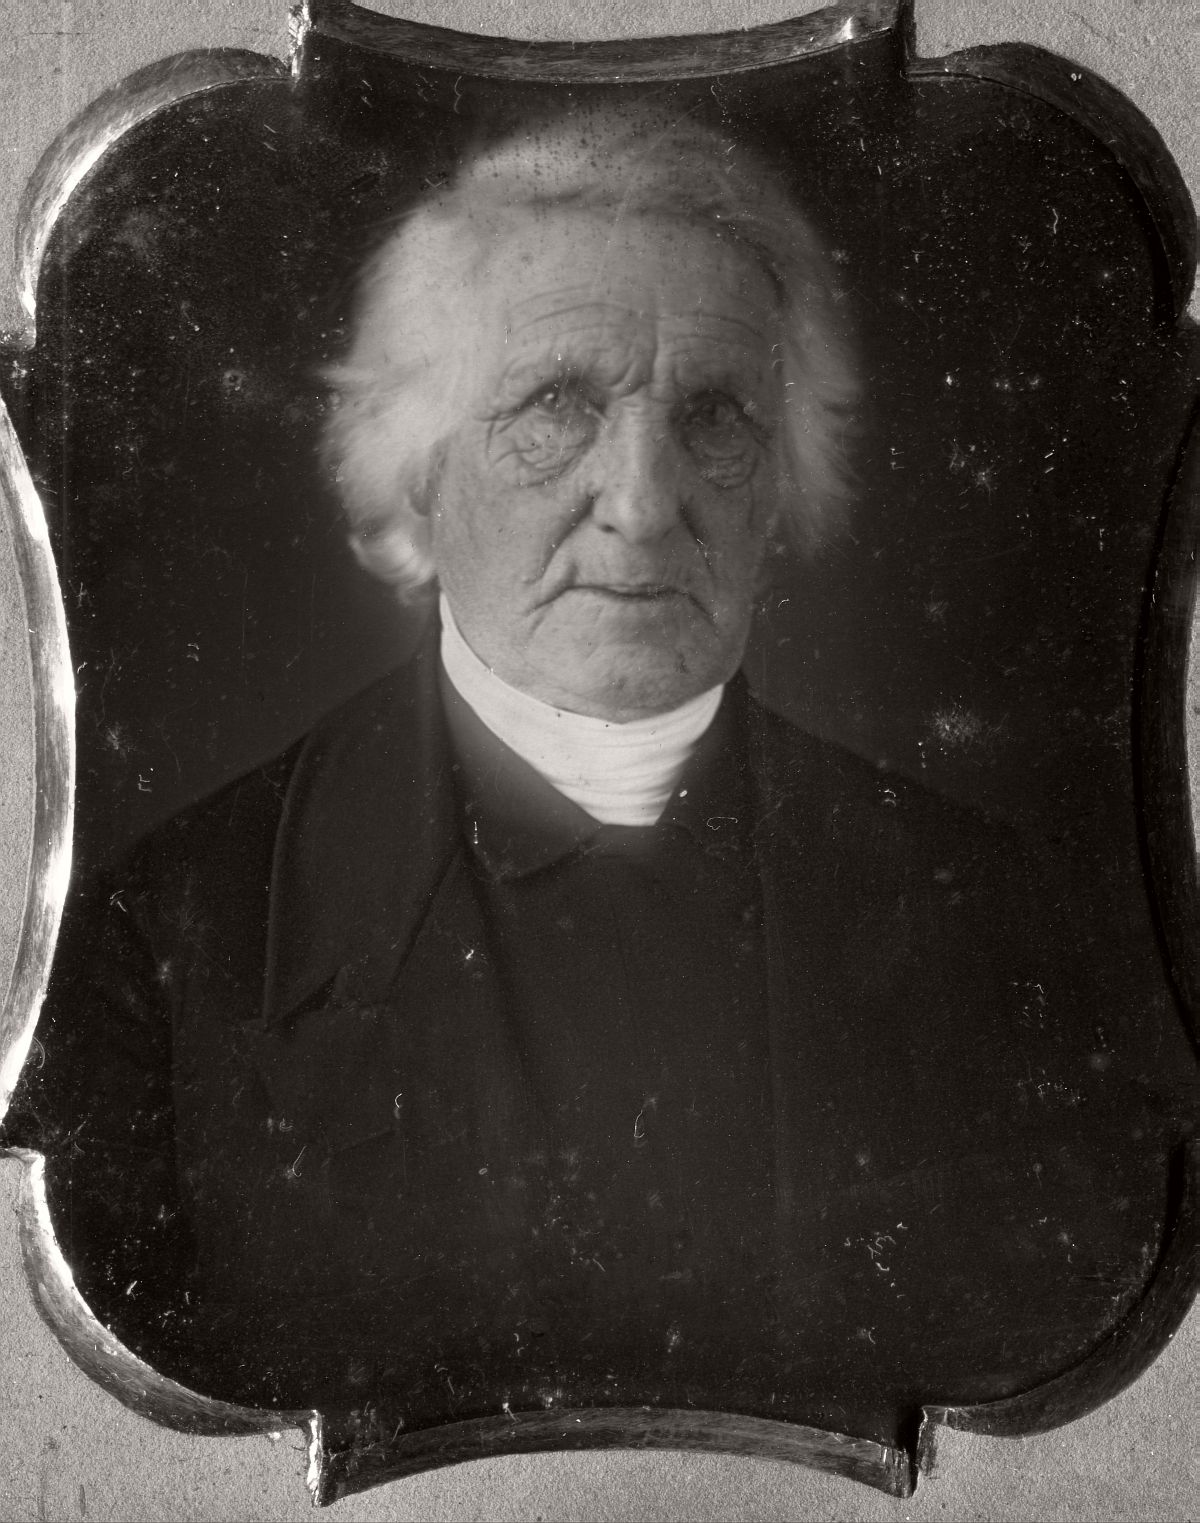 daguerreotype-portrait-people-born-in-the-late-18th-xviii-century-1700s-vintage-10